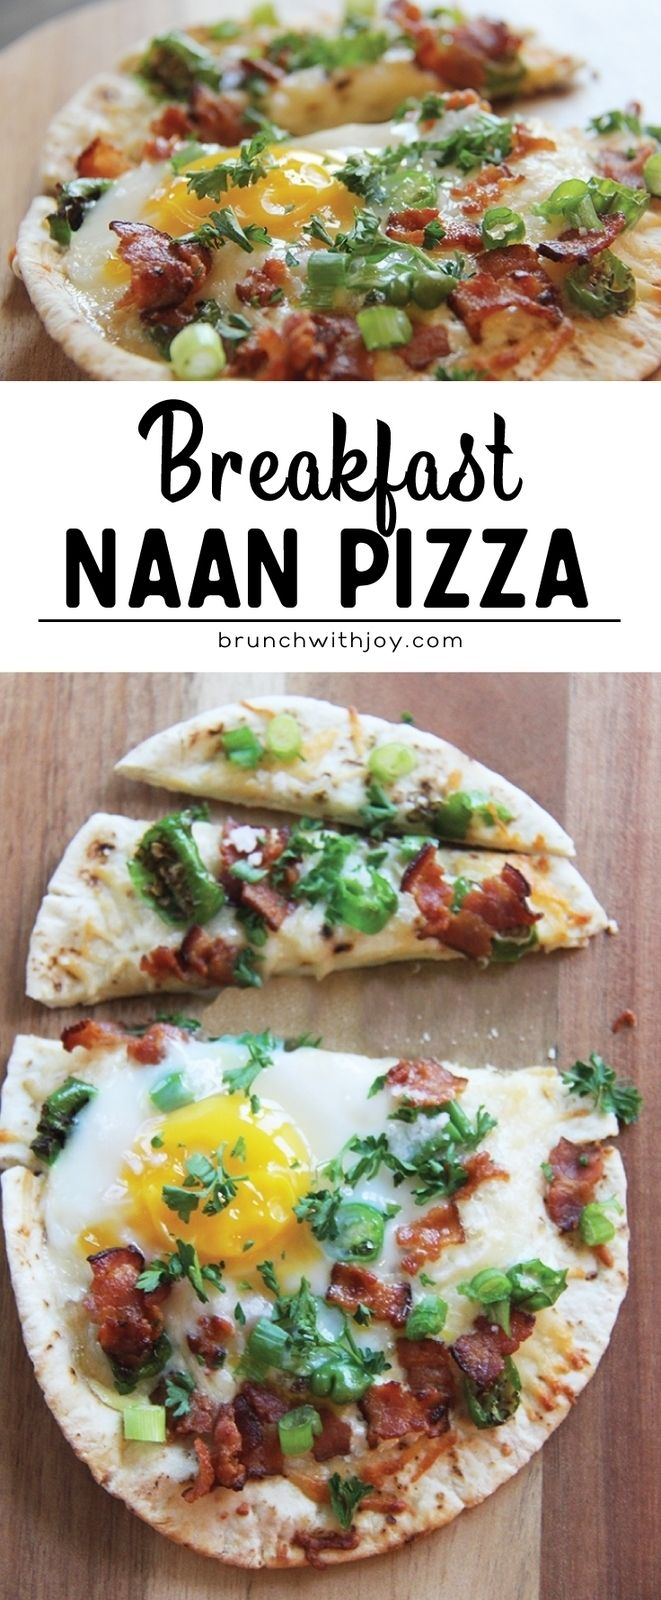 Breakfast Naan Pizza is here and it's my happy breakfast!